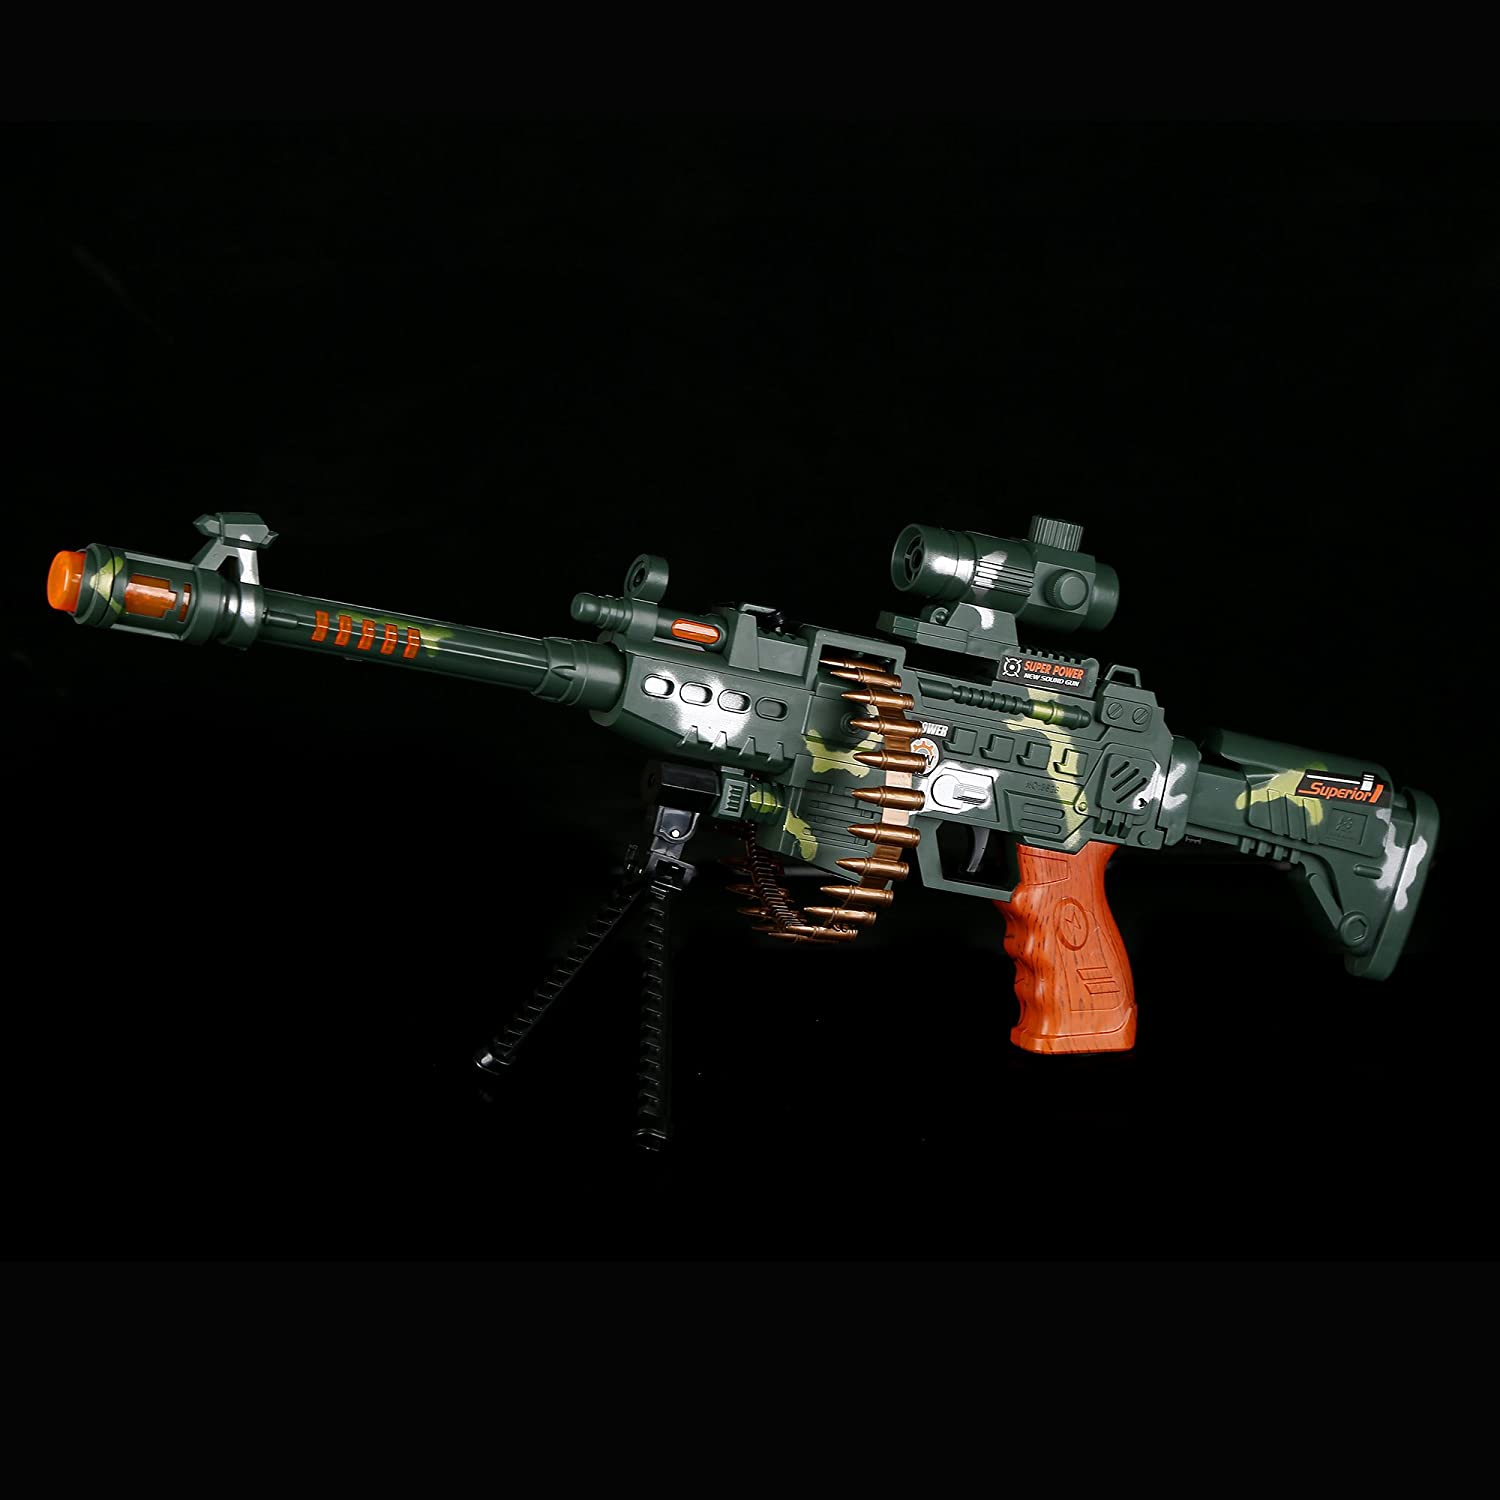 Gifts Rewards LED Camo Sniper Rifle Prizes for Party Favors Fun Central AT754 LED Camo Sniper Rifle LED Light Up Rifle Kids LED Rifle